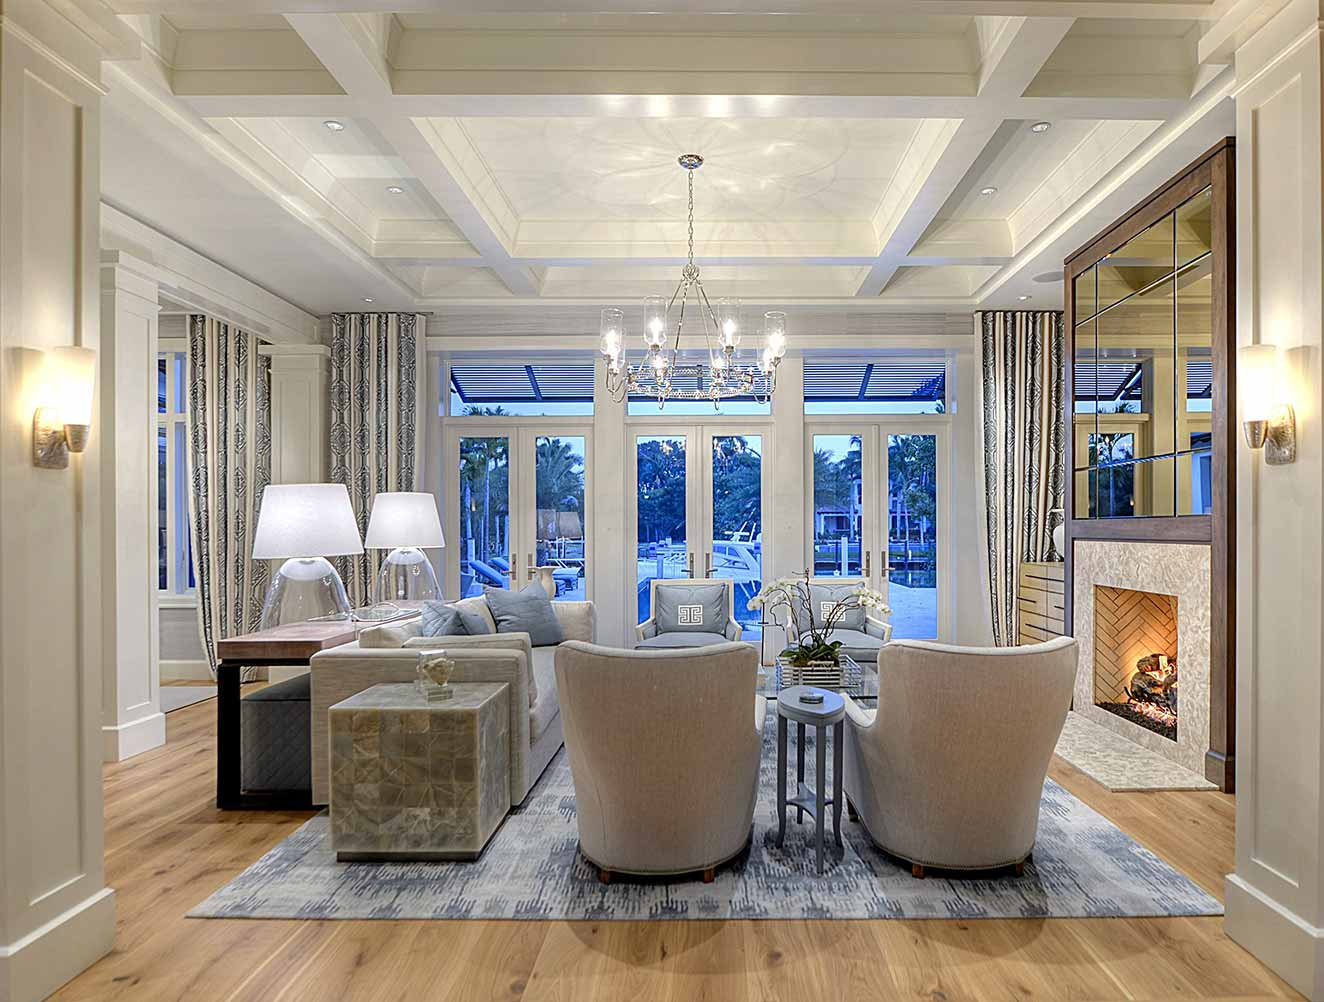 Living Room at Little Harbour Residence in Naples Florida, single family home designed by Kukk Architecture & Design Naples Architecture Firm